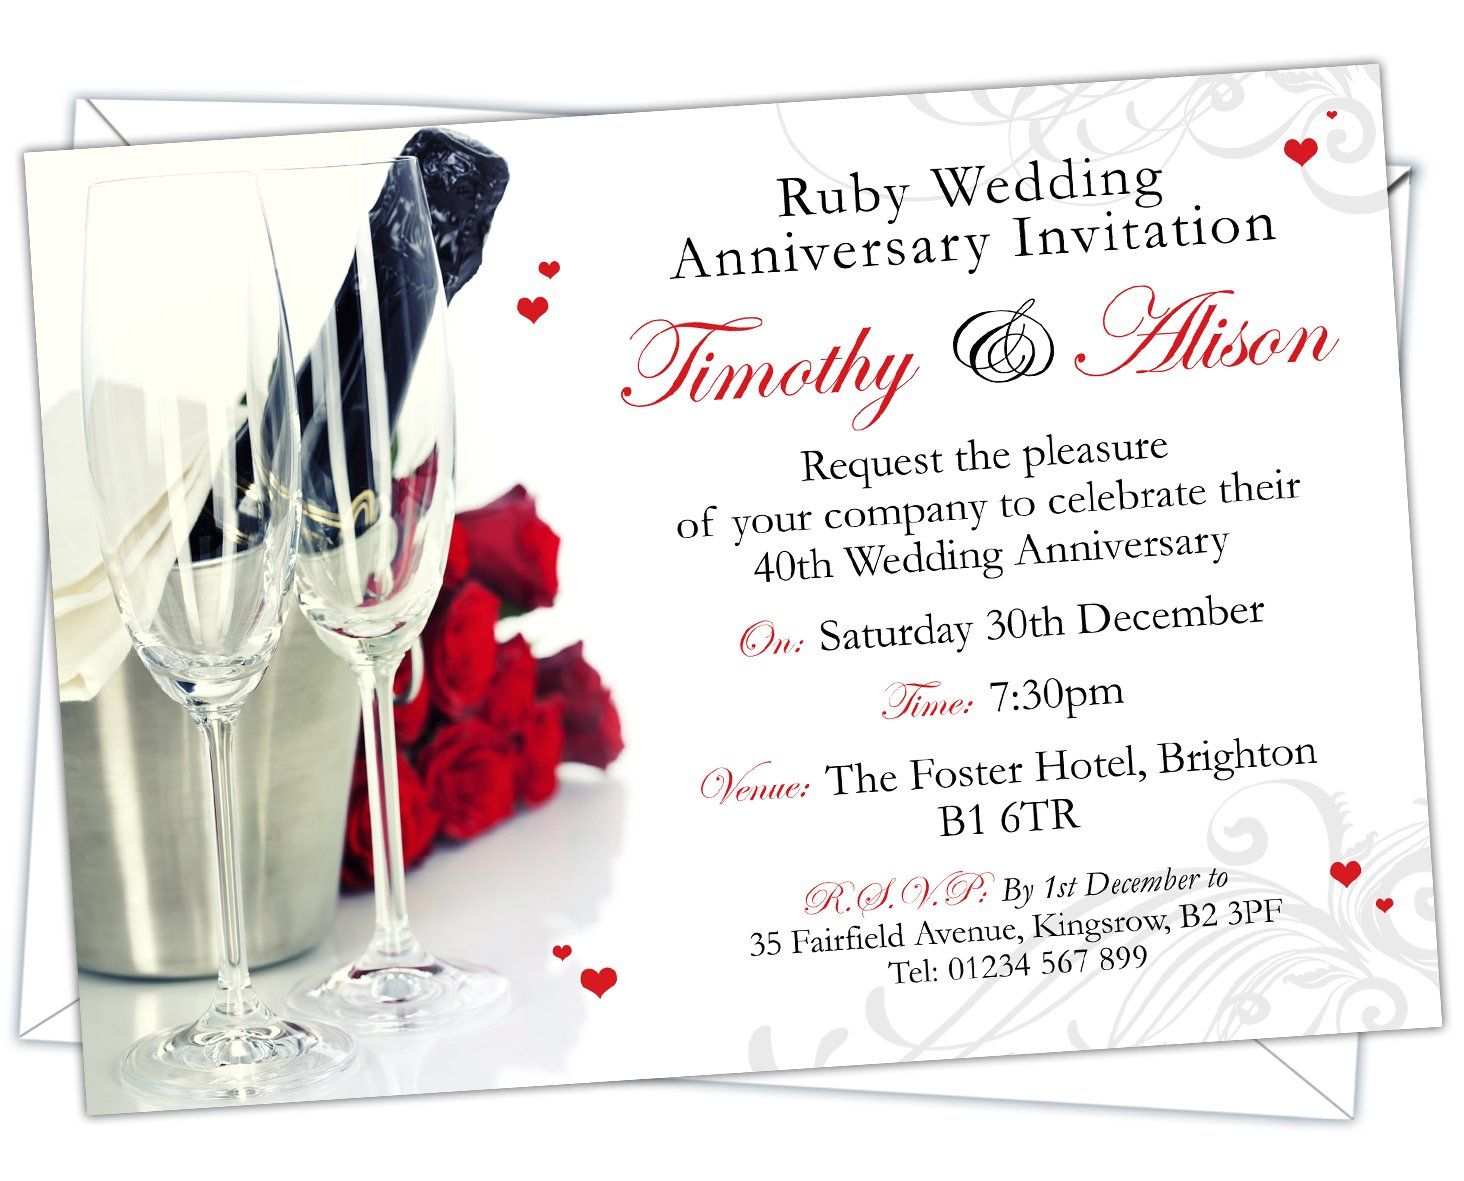 Personalised Ruby Wedding 40th Anniversary Invitations Design Code Rwa 024 Pack Of 52